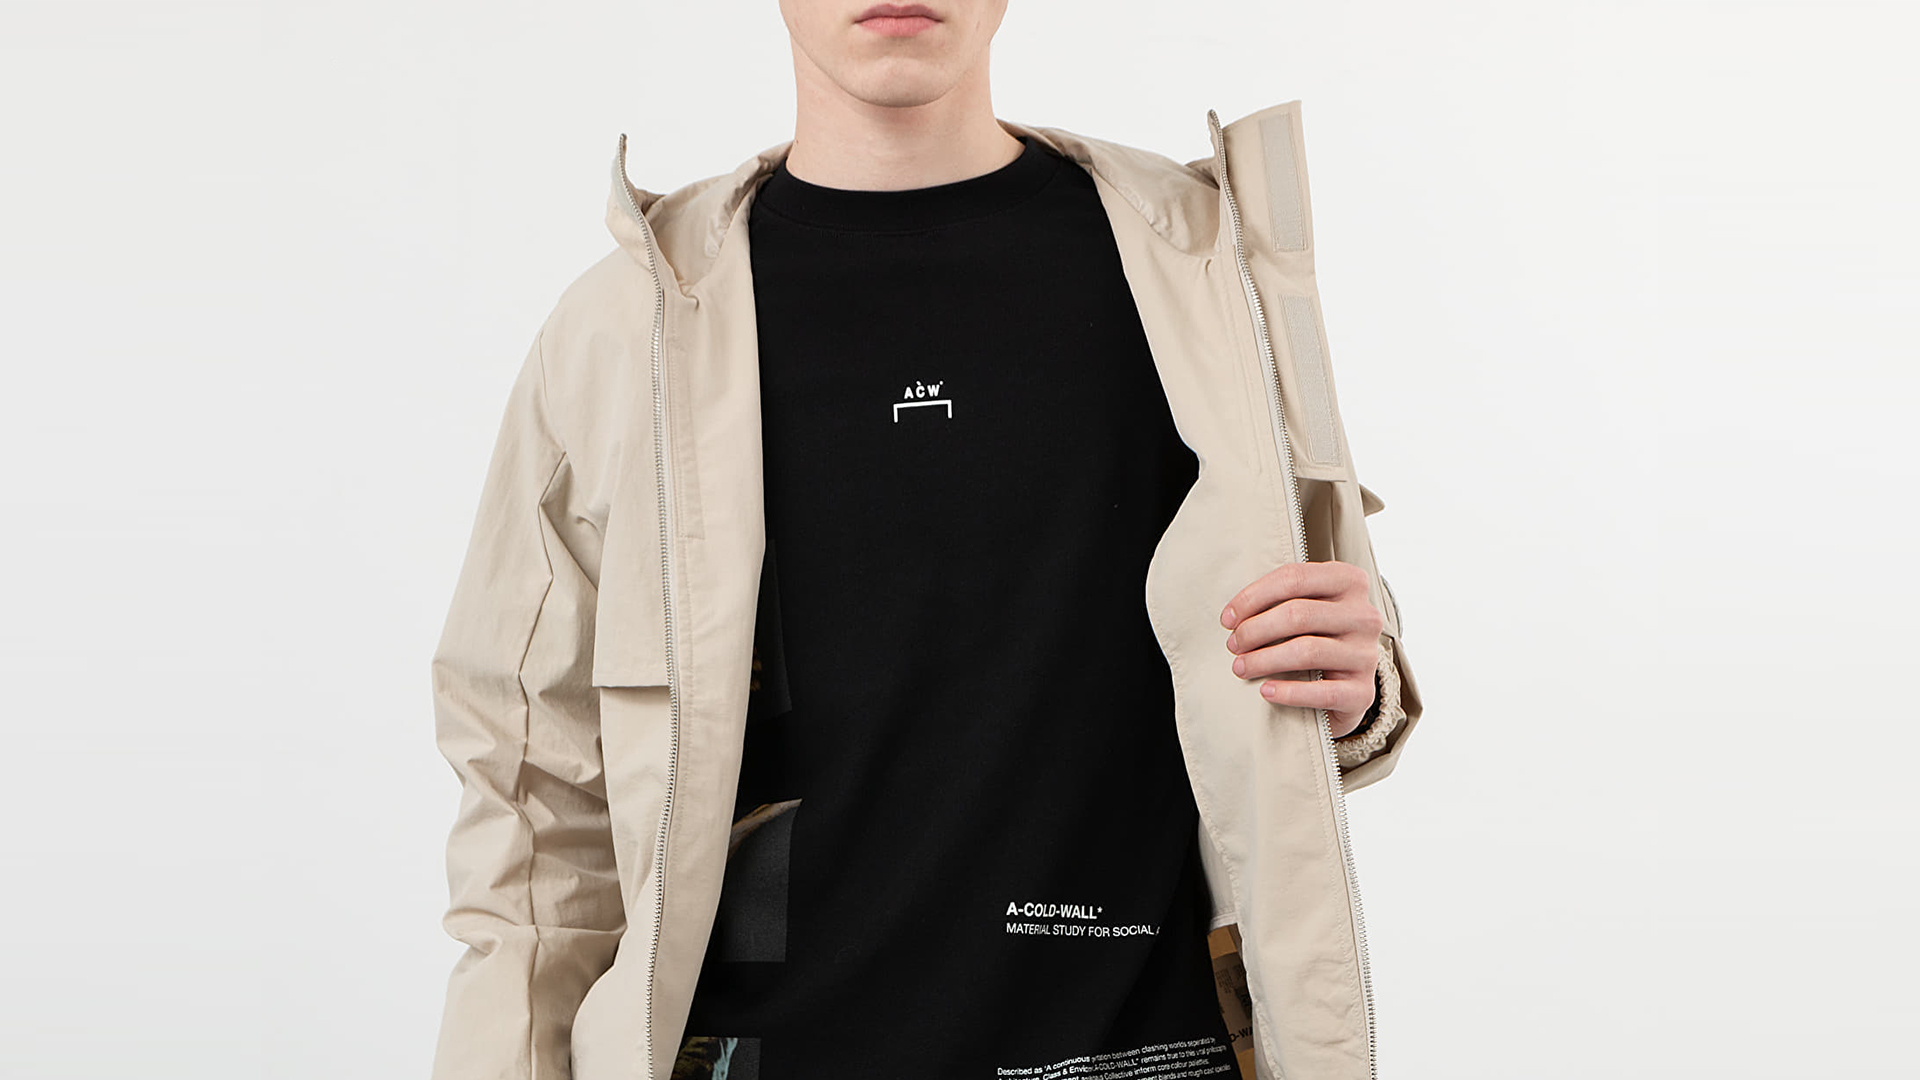 Virgil Abloh's influence on Samuel Ross. About: A-COLD-WALL*